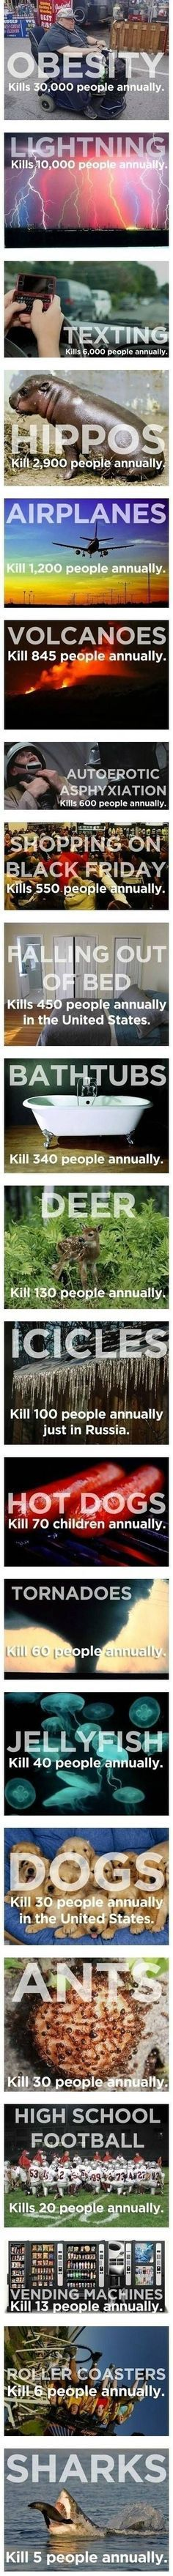 Statistics on death. Crazy! Had to share cause of the deer part haha